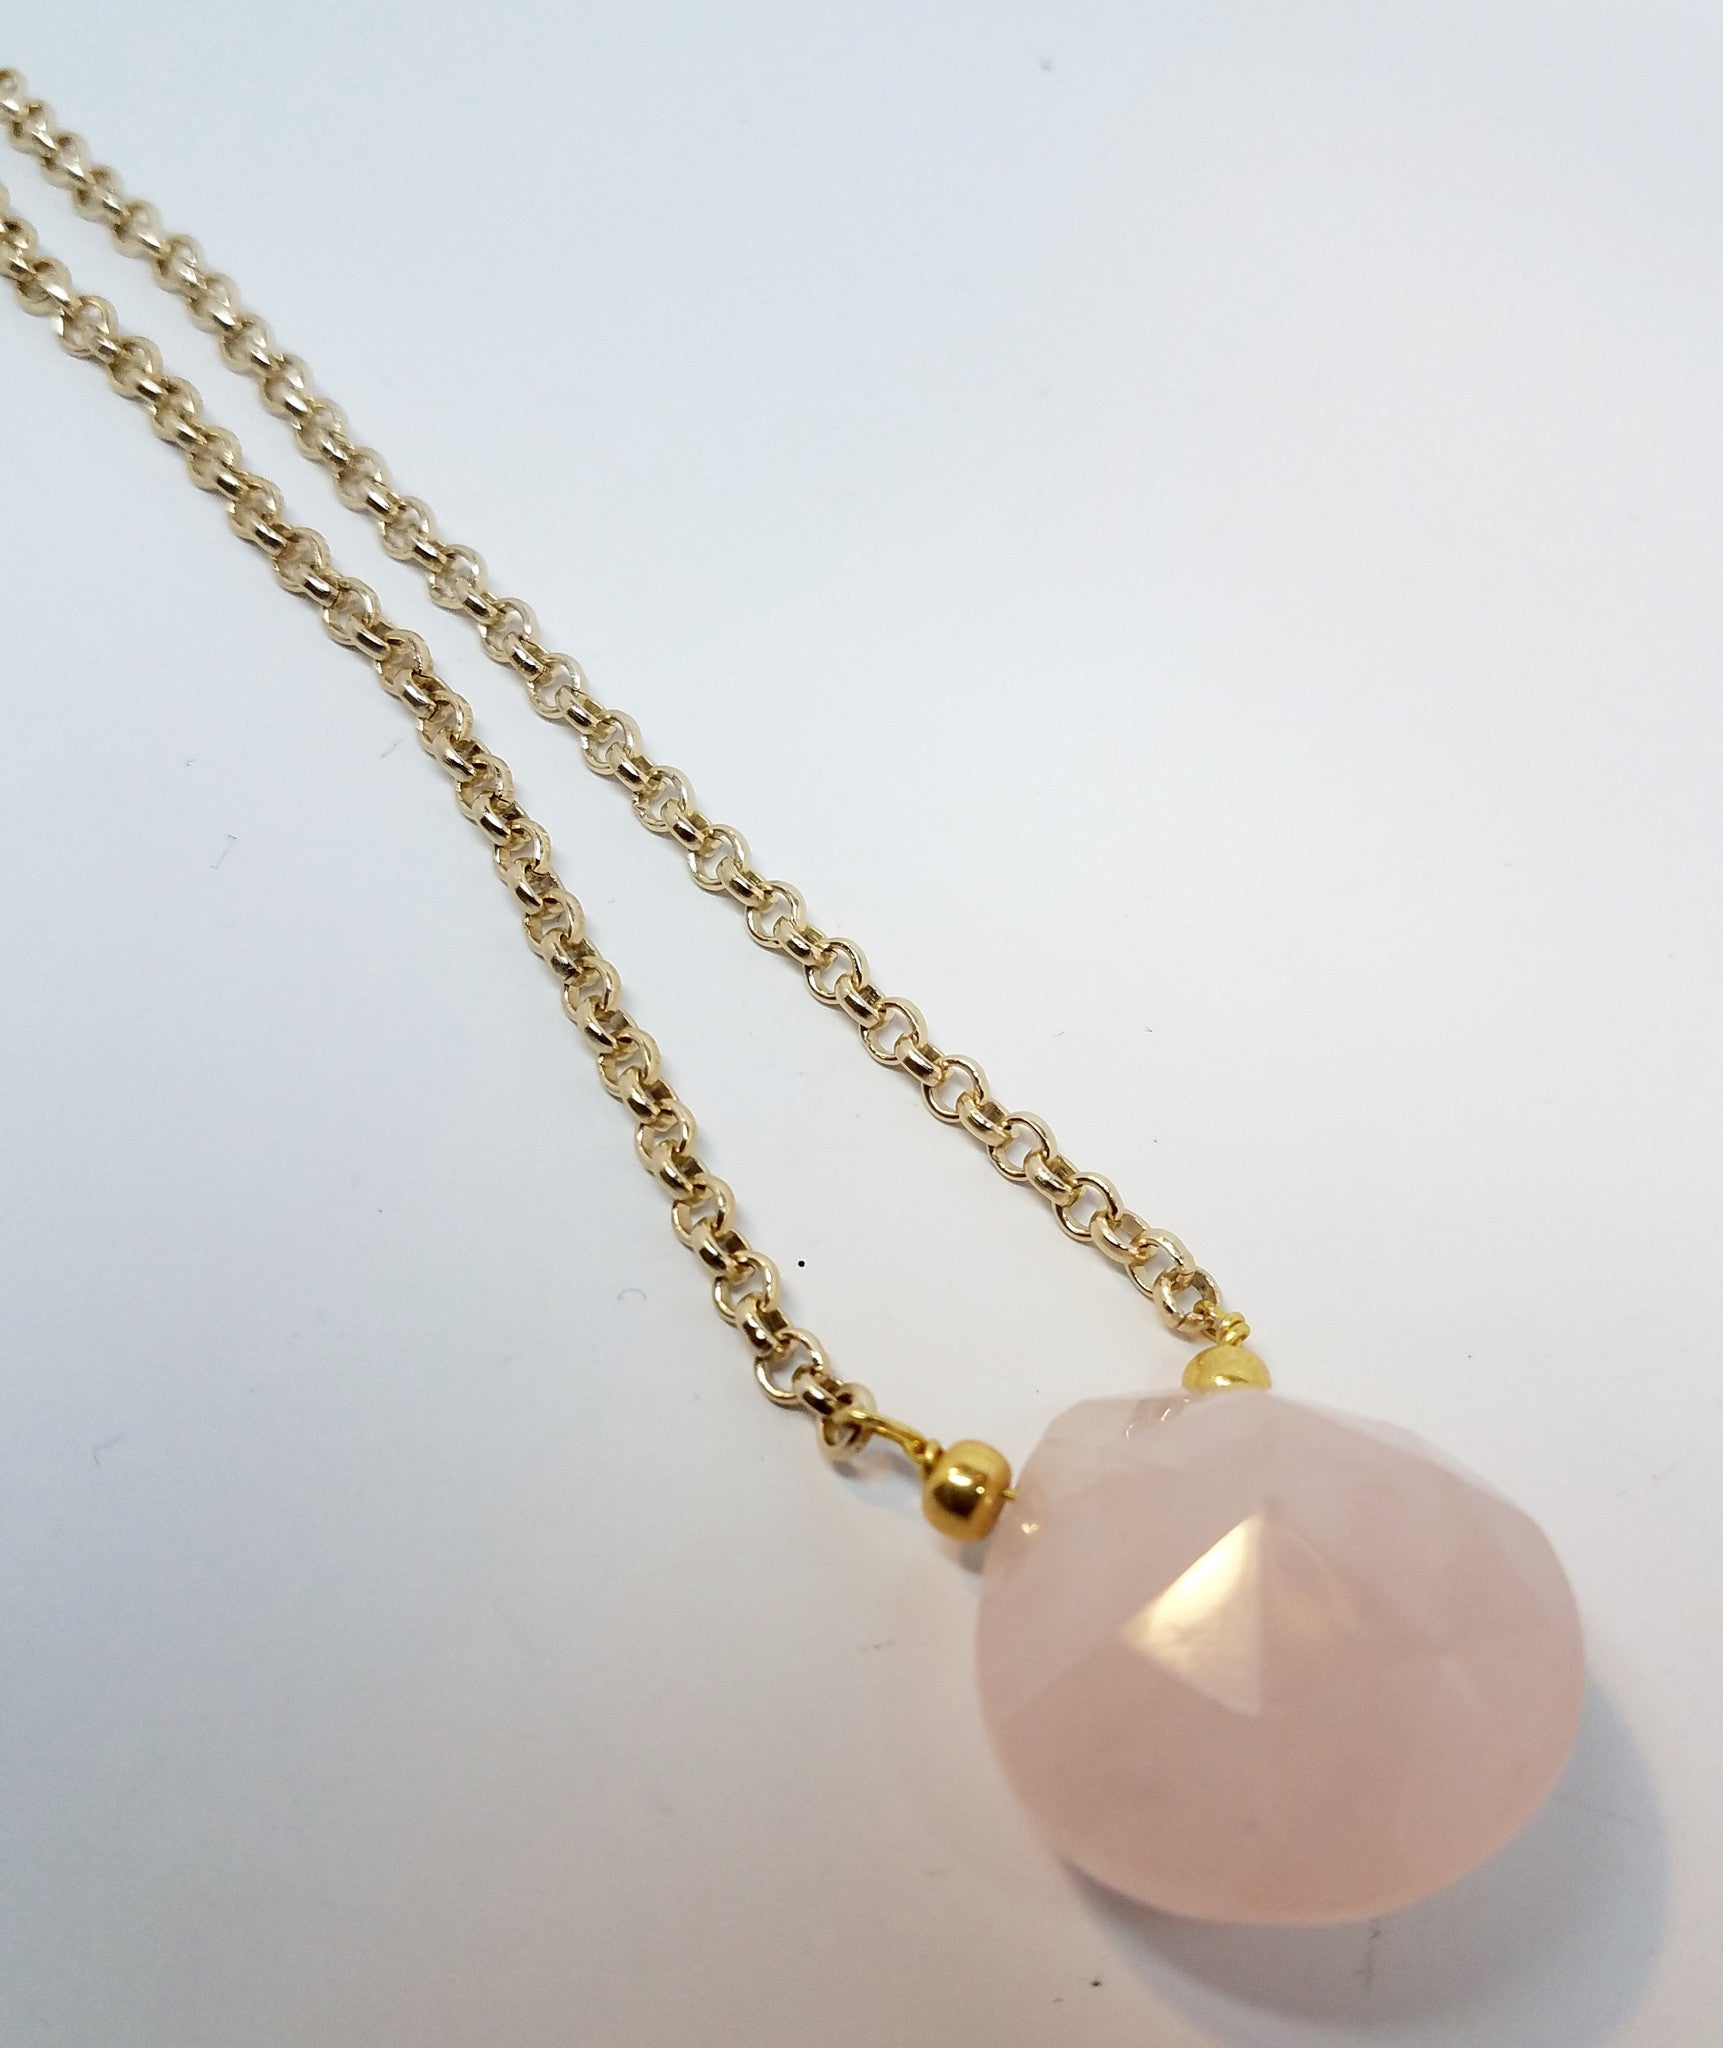 Rose Quartz Briolette Necklace - Pretty Princess Style  - 3